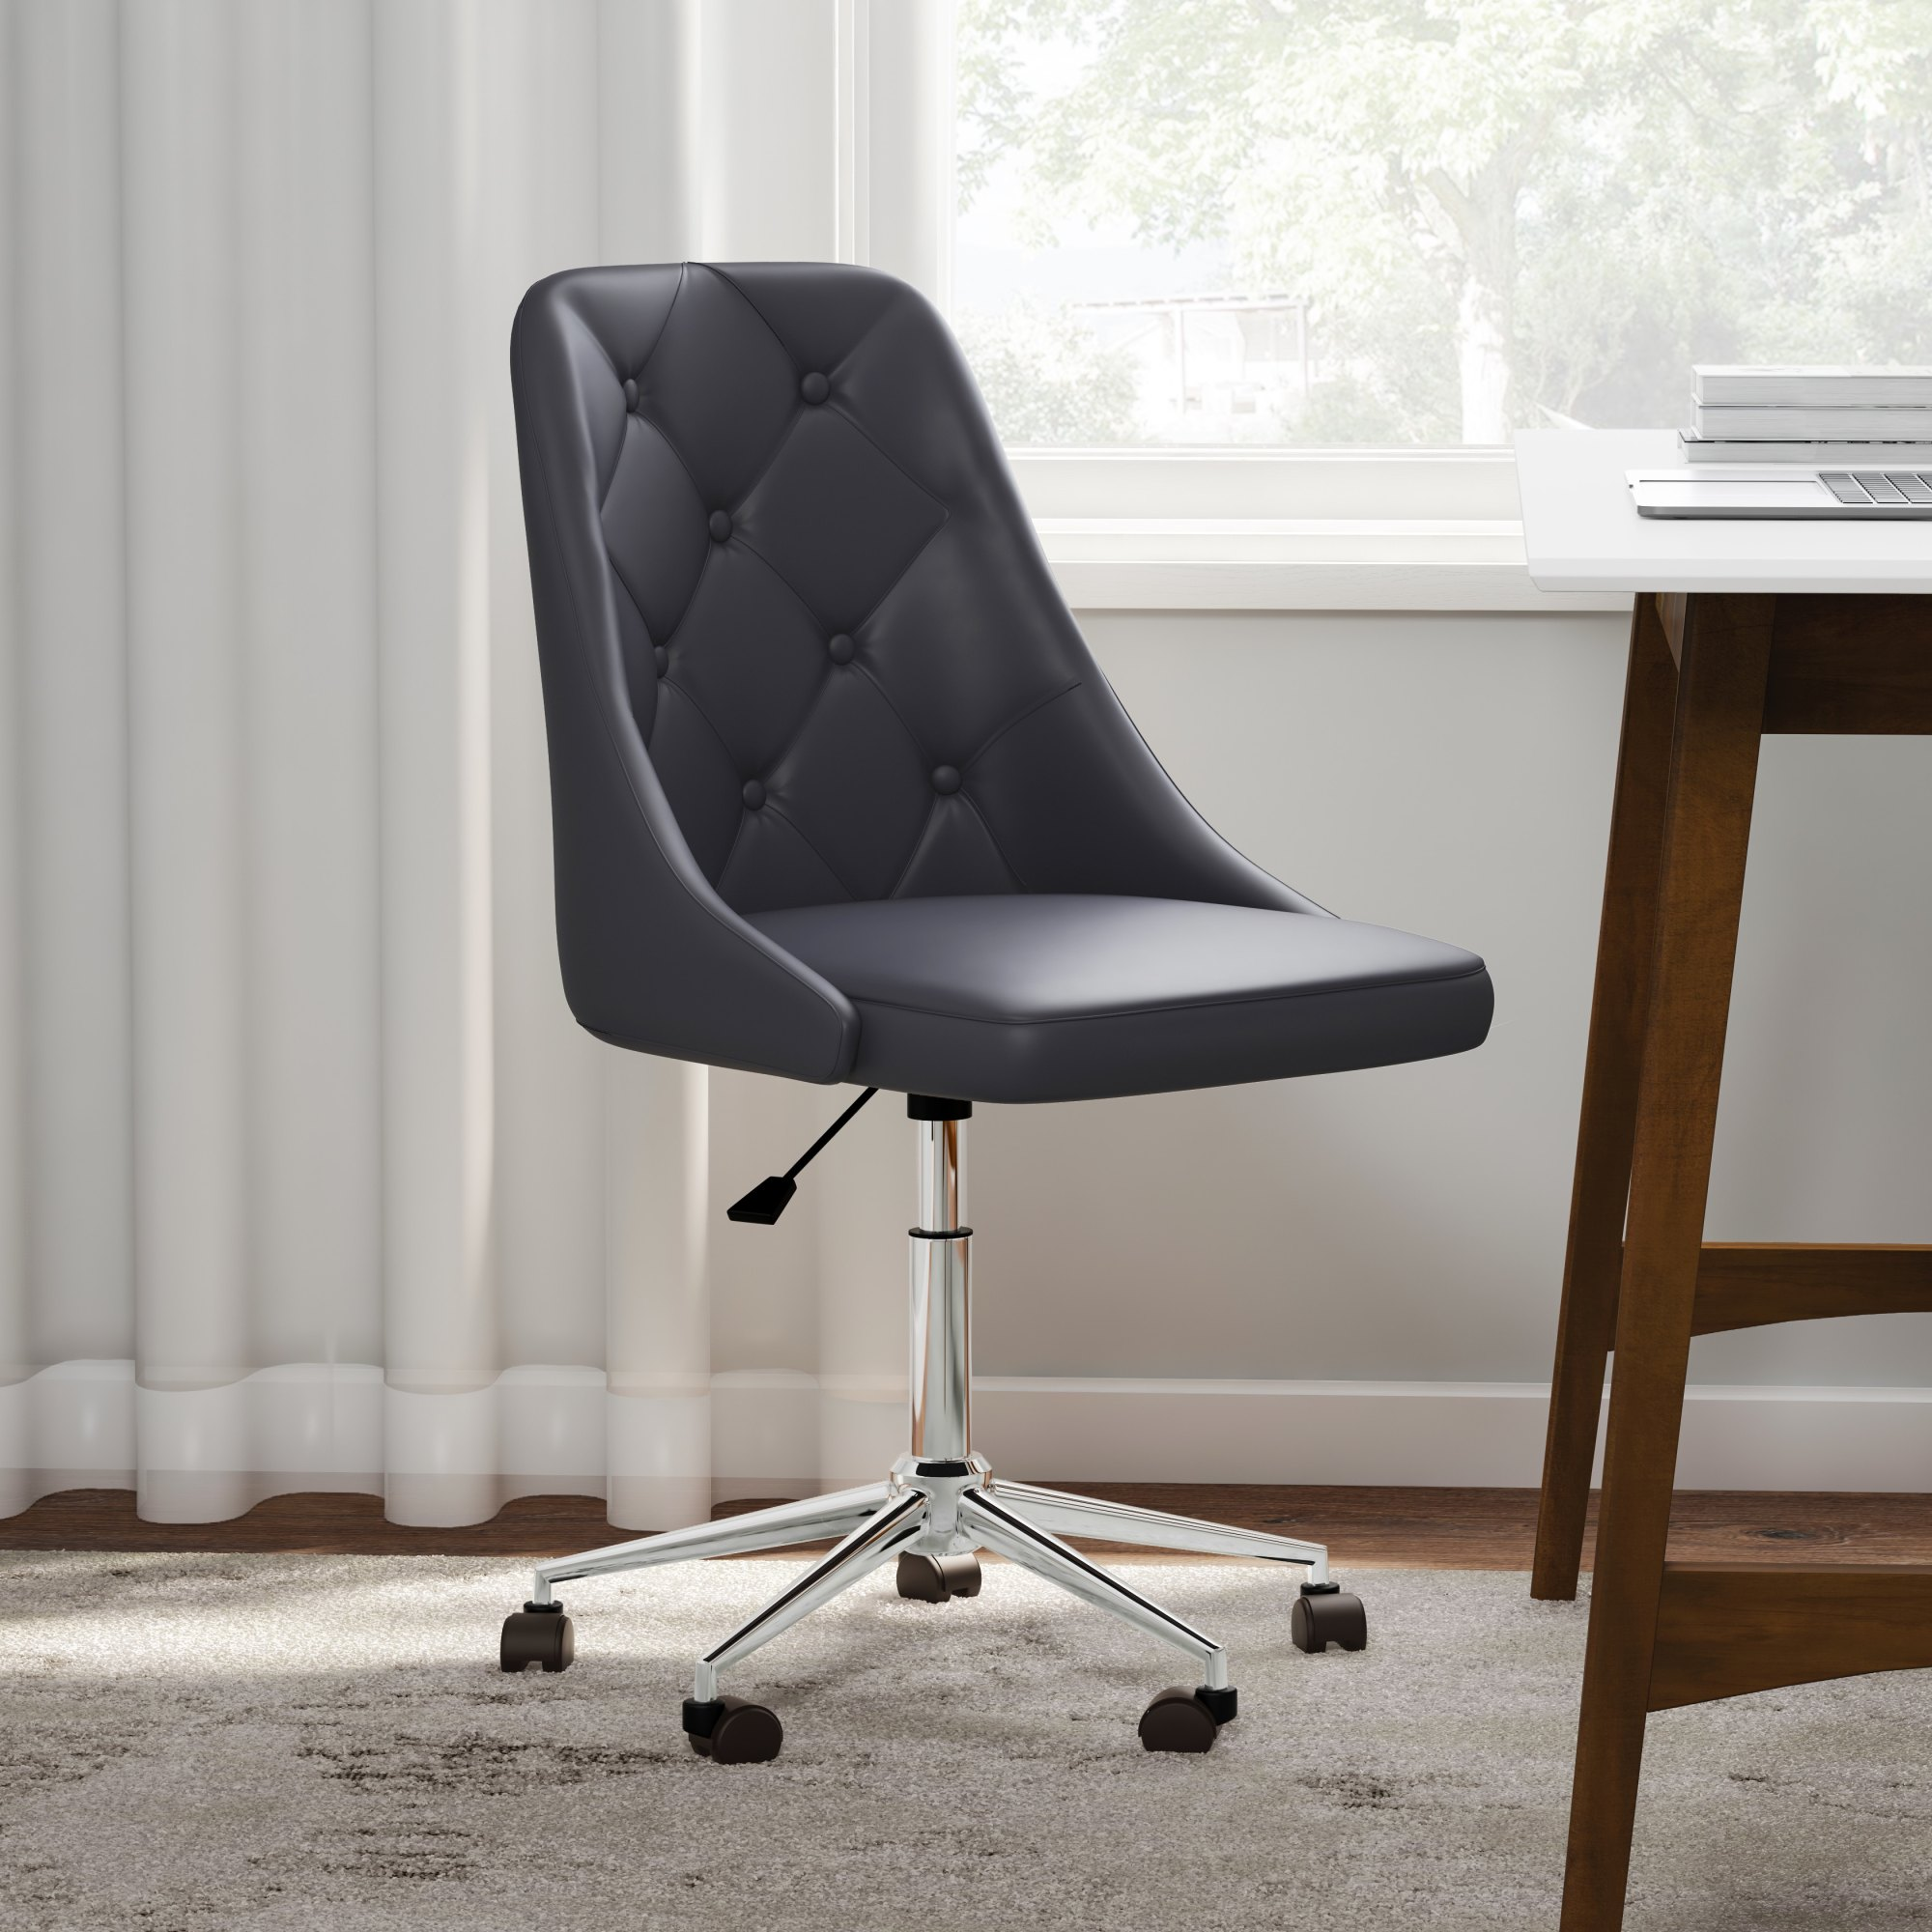 hight resolution of shop carson carrington ockelbo button tufted office chair with faux leather on sale ships to canada overstock 20543644